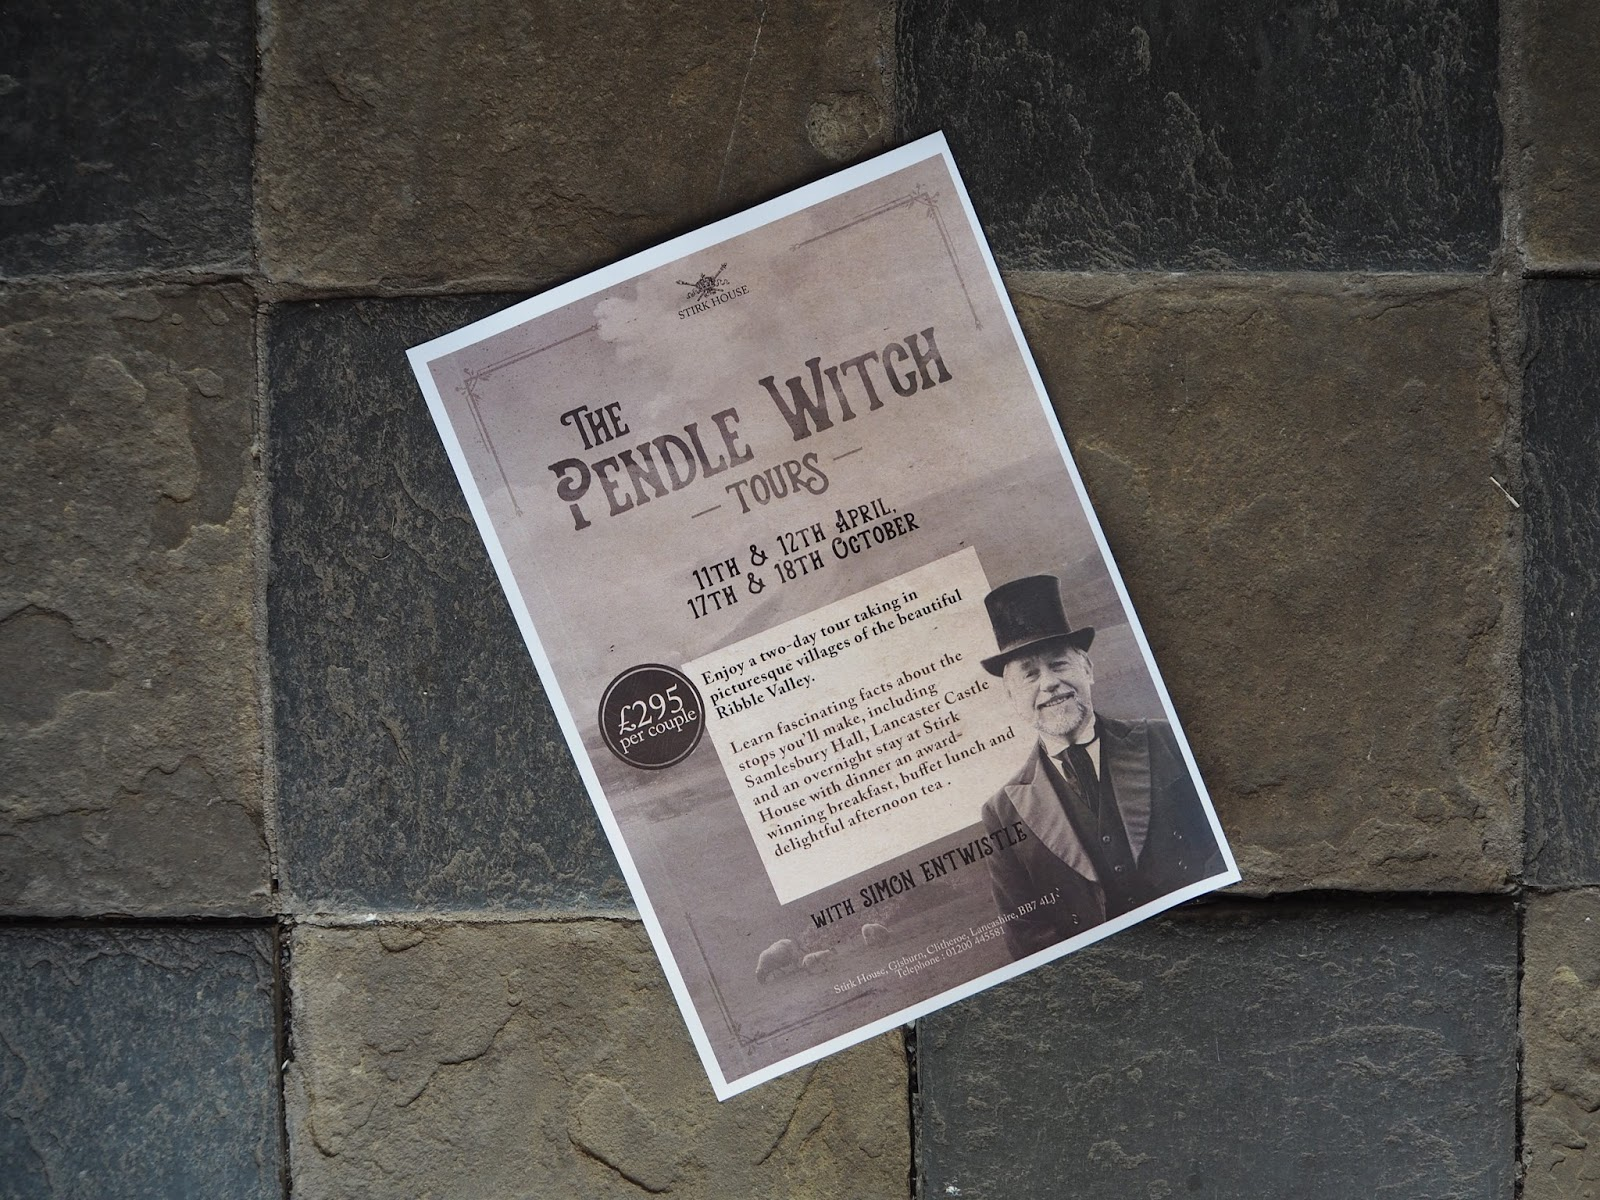 Stirk House Gisburn, Pendle Witch Tours, village of Downham